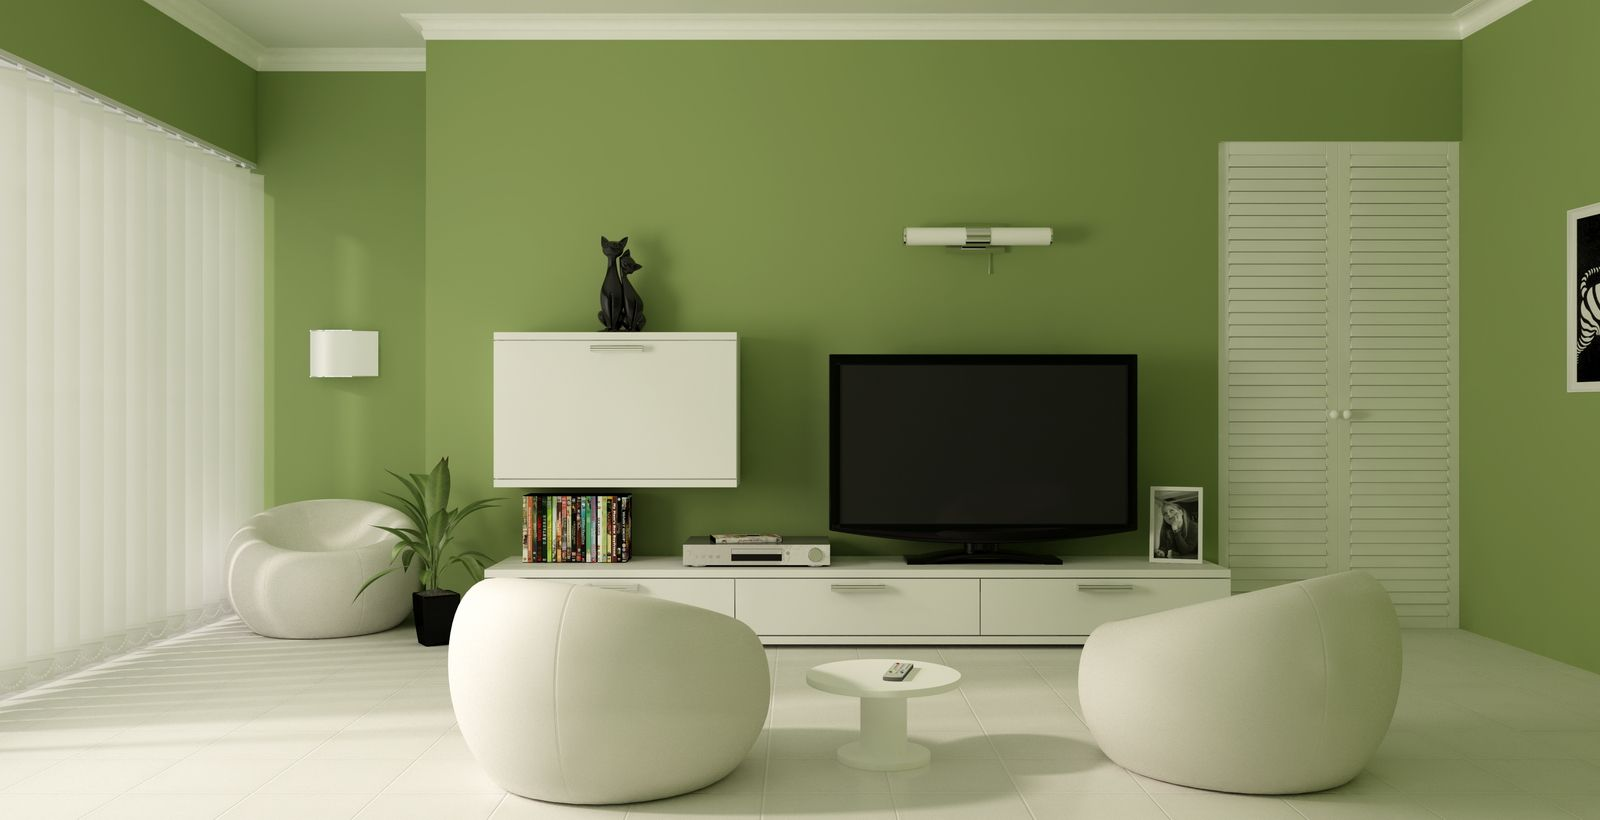 Color For Room paint colors ideas for living room | green paint colors, living